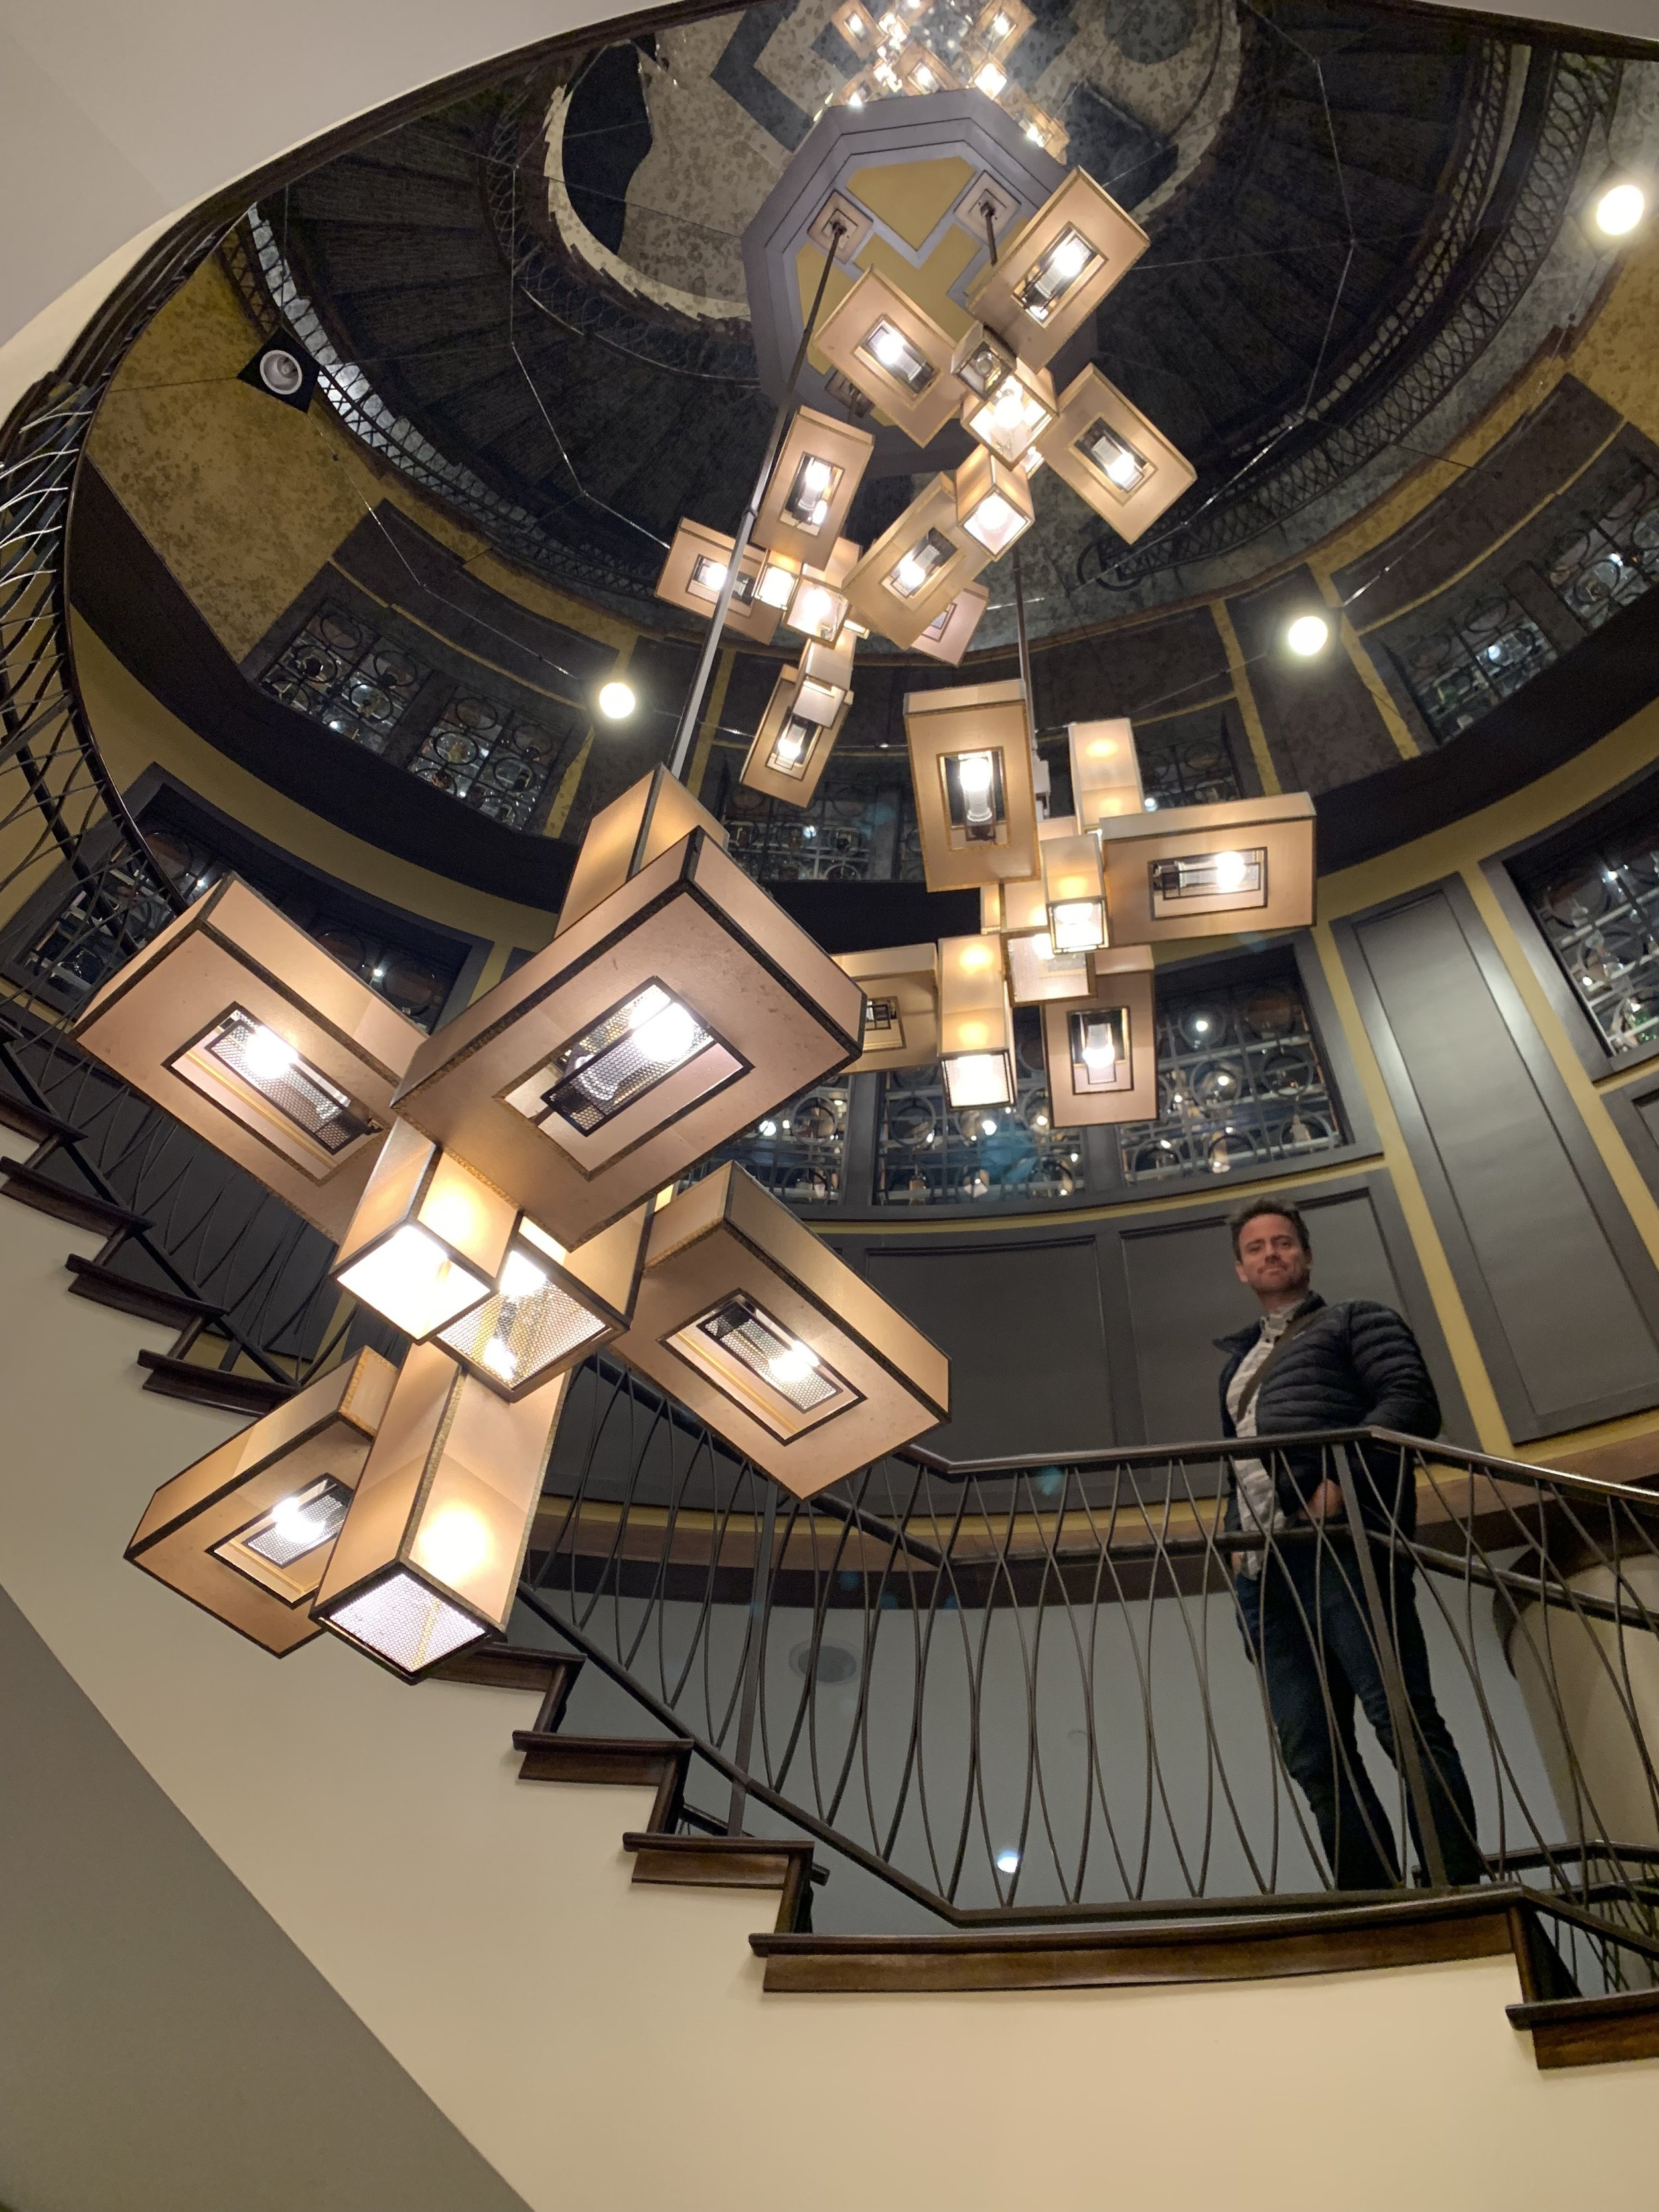 The staircase inside the Edgewater is beautiful!